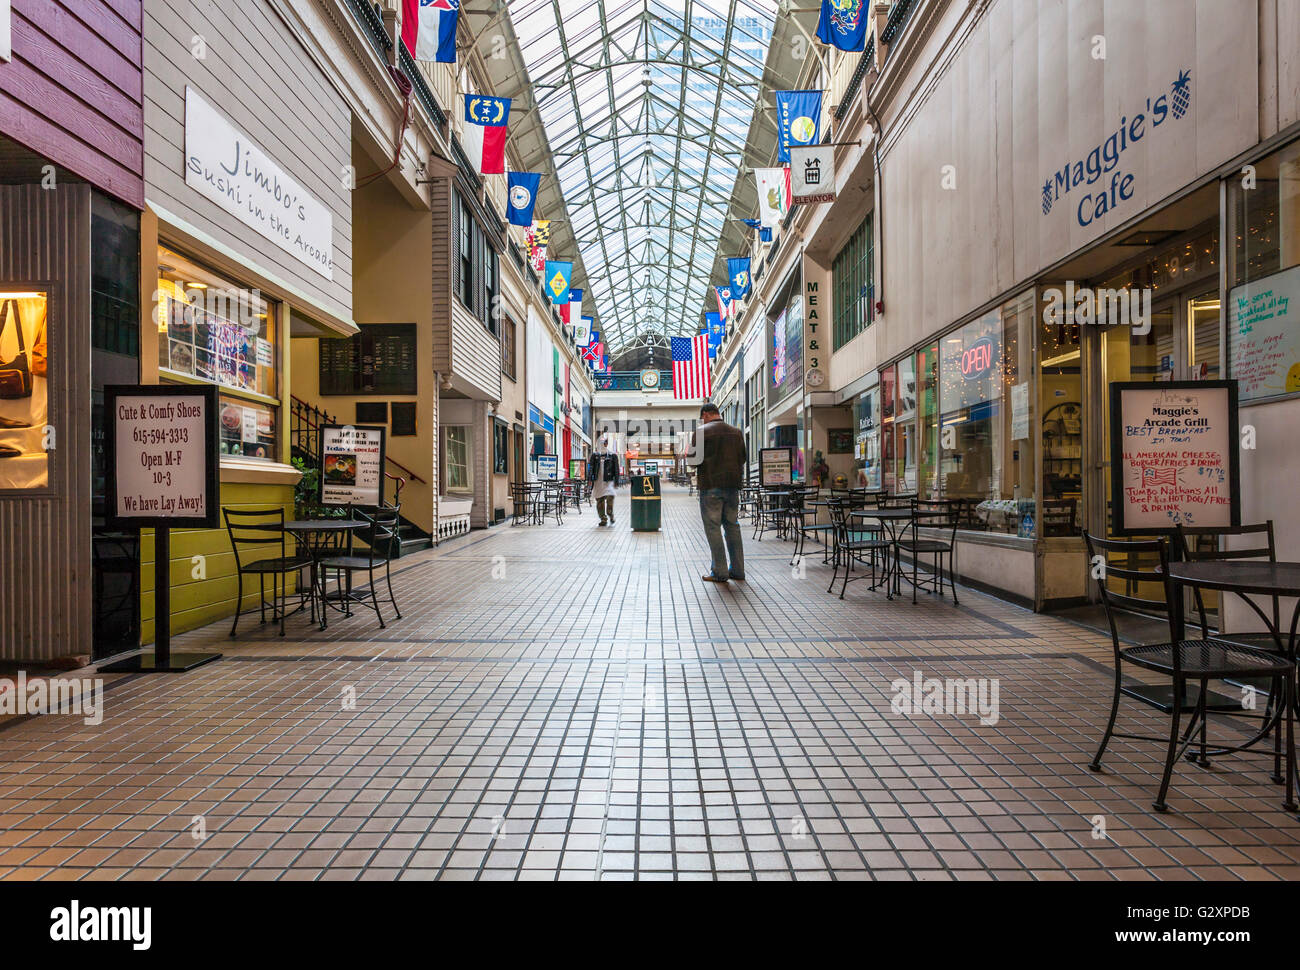 The historic arcade shopping center in downtown nashville for Antique stores in nashville